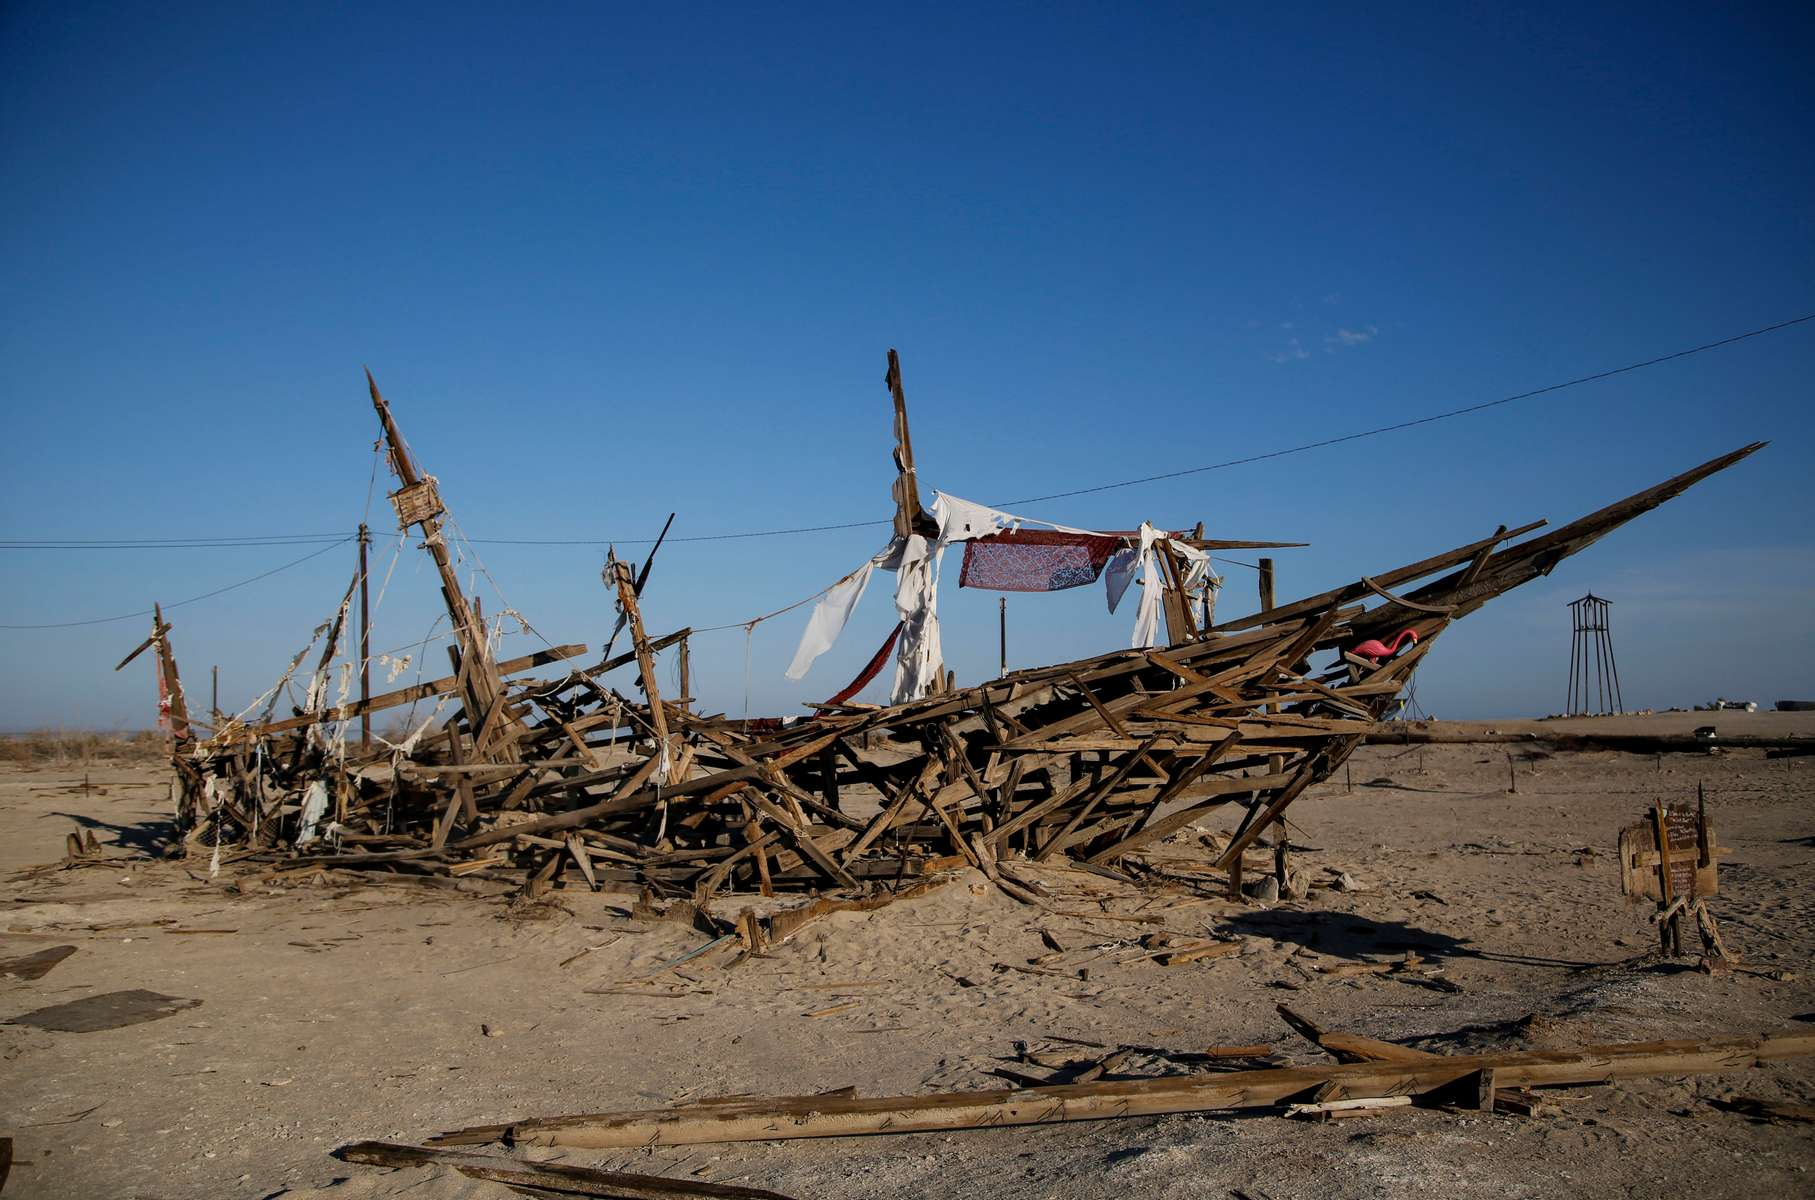 An art installation is seen on the Salton Sea's beach, as California faces its worst drought since 1977, in Bombay Beach, California, U.S., July 4, 2021.